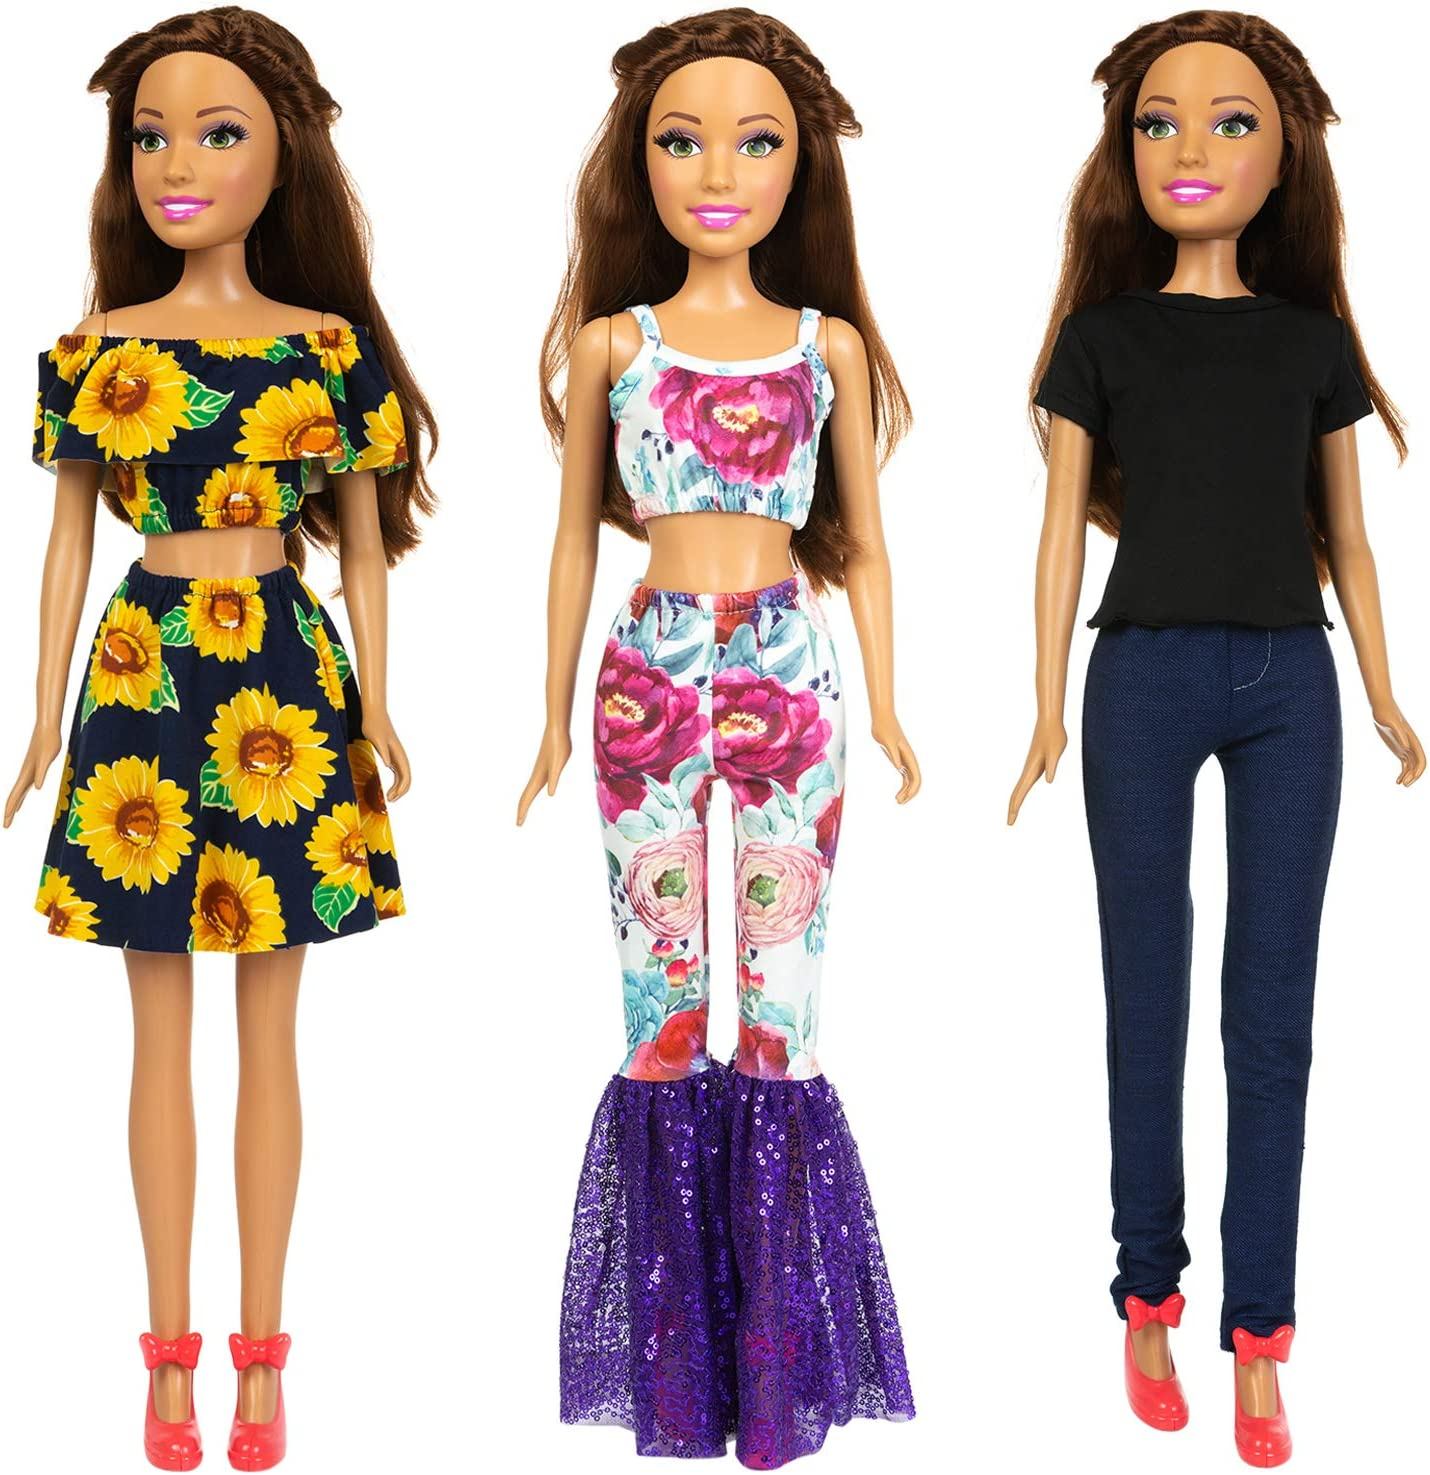 Fashionable doll clothes Clothes for 28 inch Barbie and friends Adorable outfit handmade for 28 inch dolls